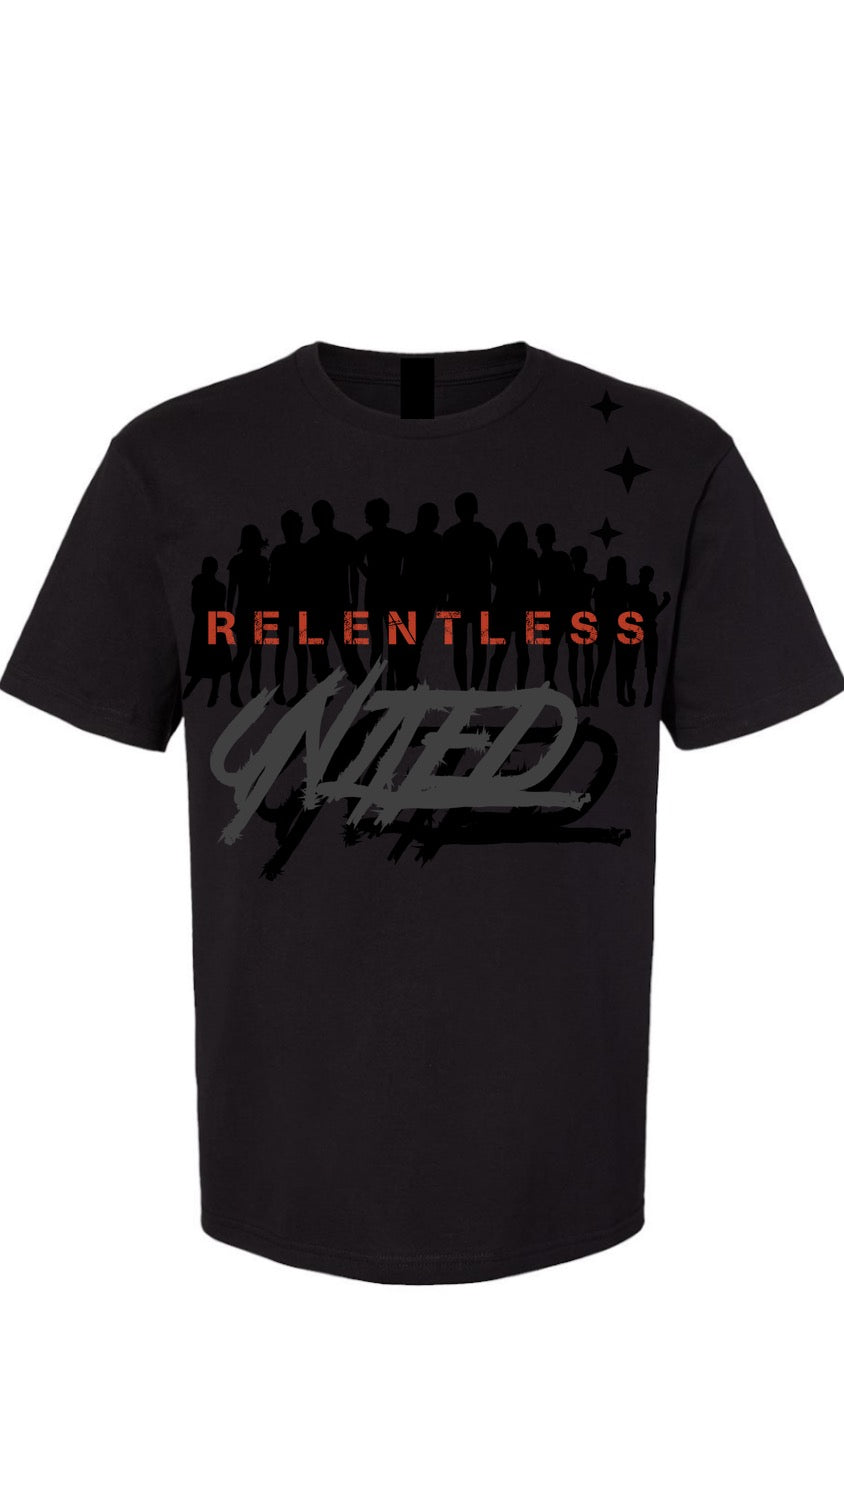 Relentless United!